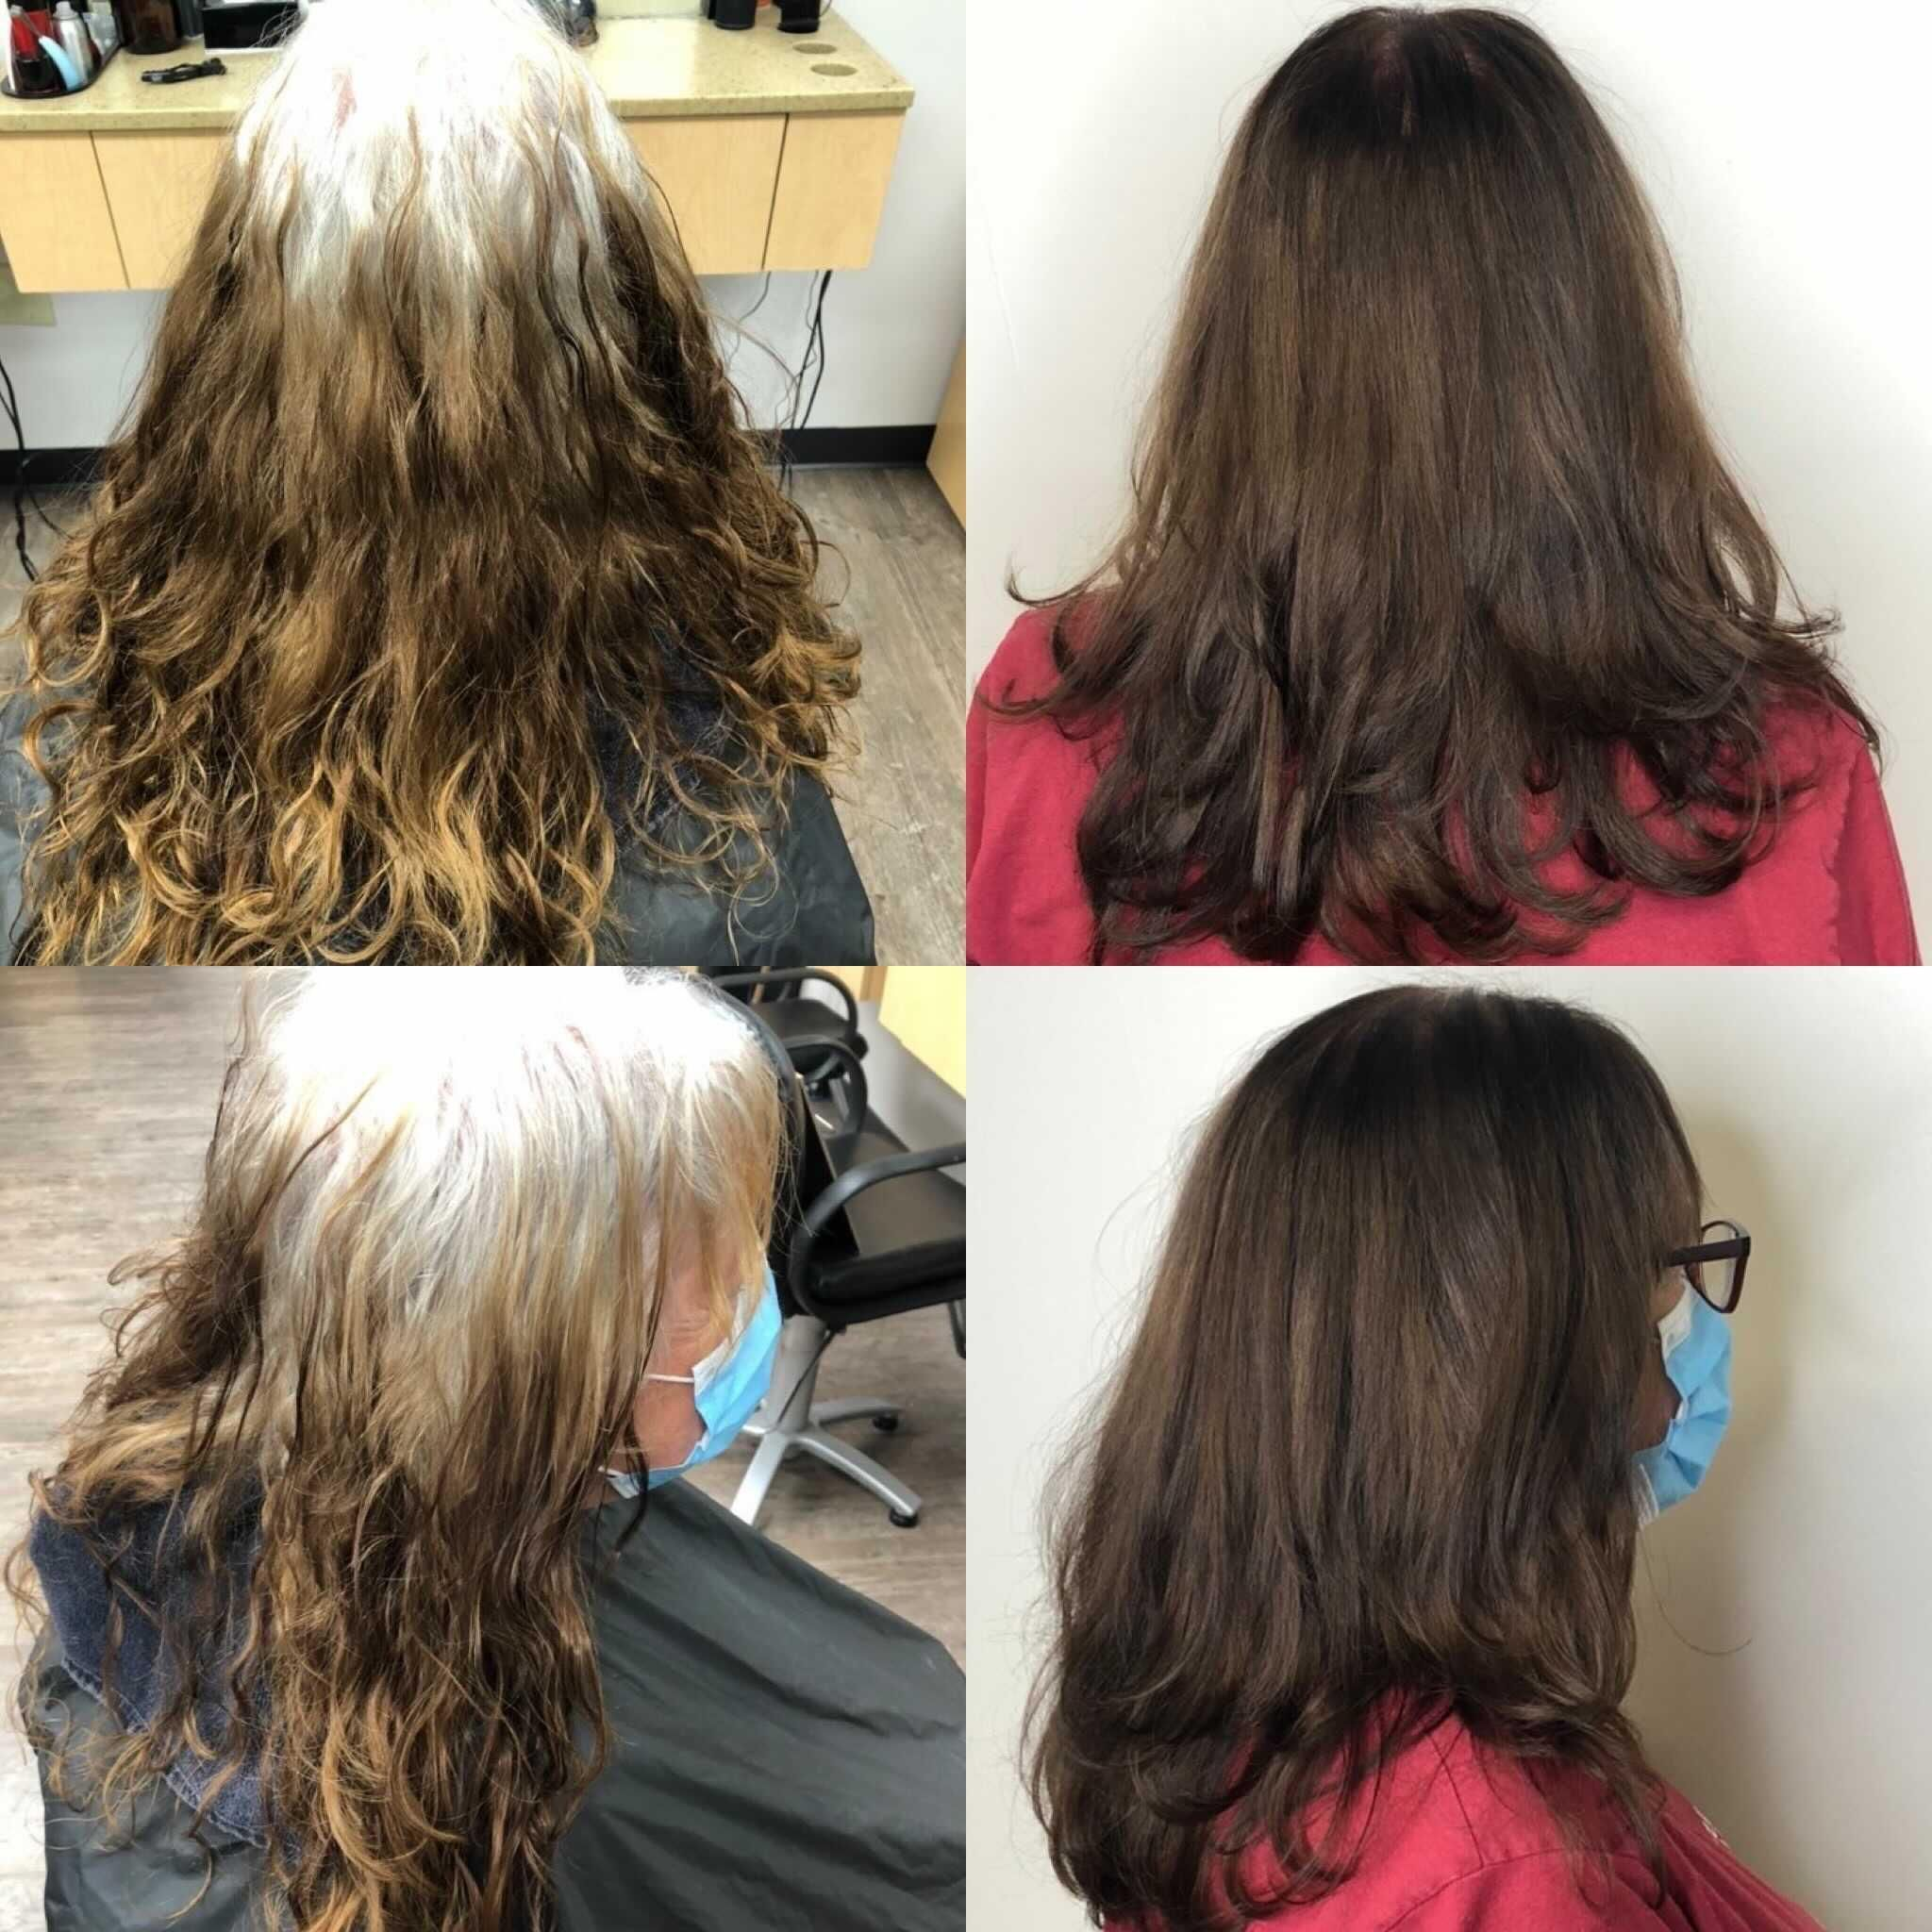 Gray Coverage And All Over Hair Color From Smartstyle Hair Salons In Walmart Mysmartstyle Makeover In 2020 Fresh Haircut Hair Styles Long Hair Styles